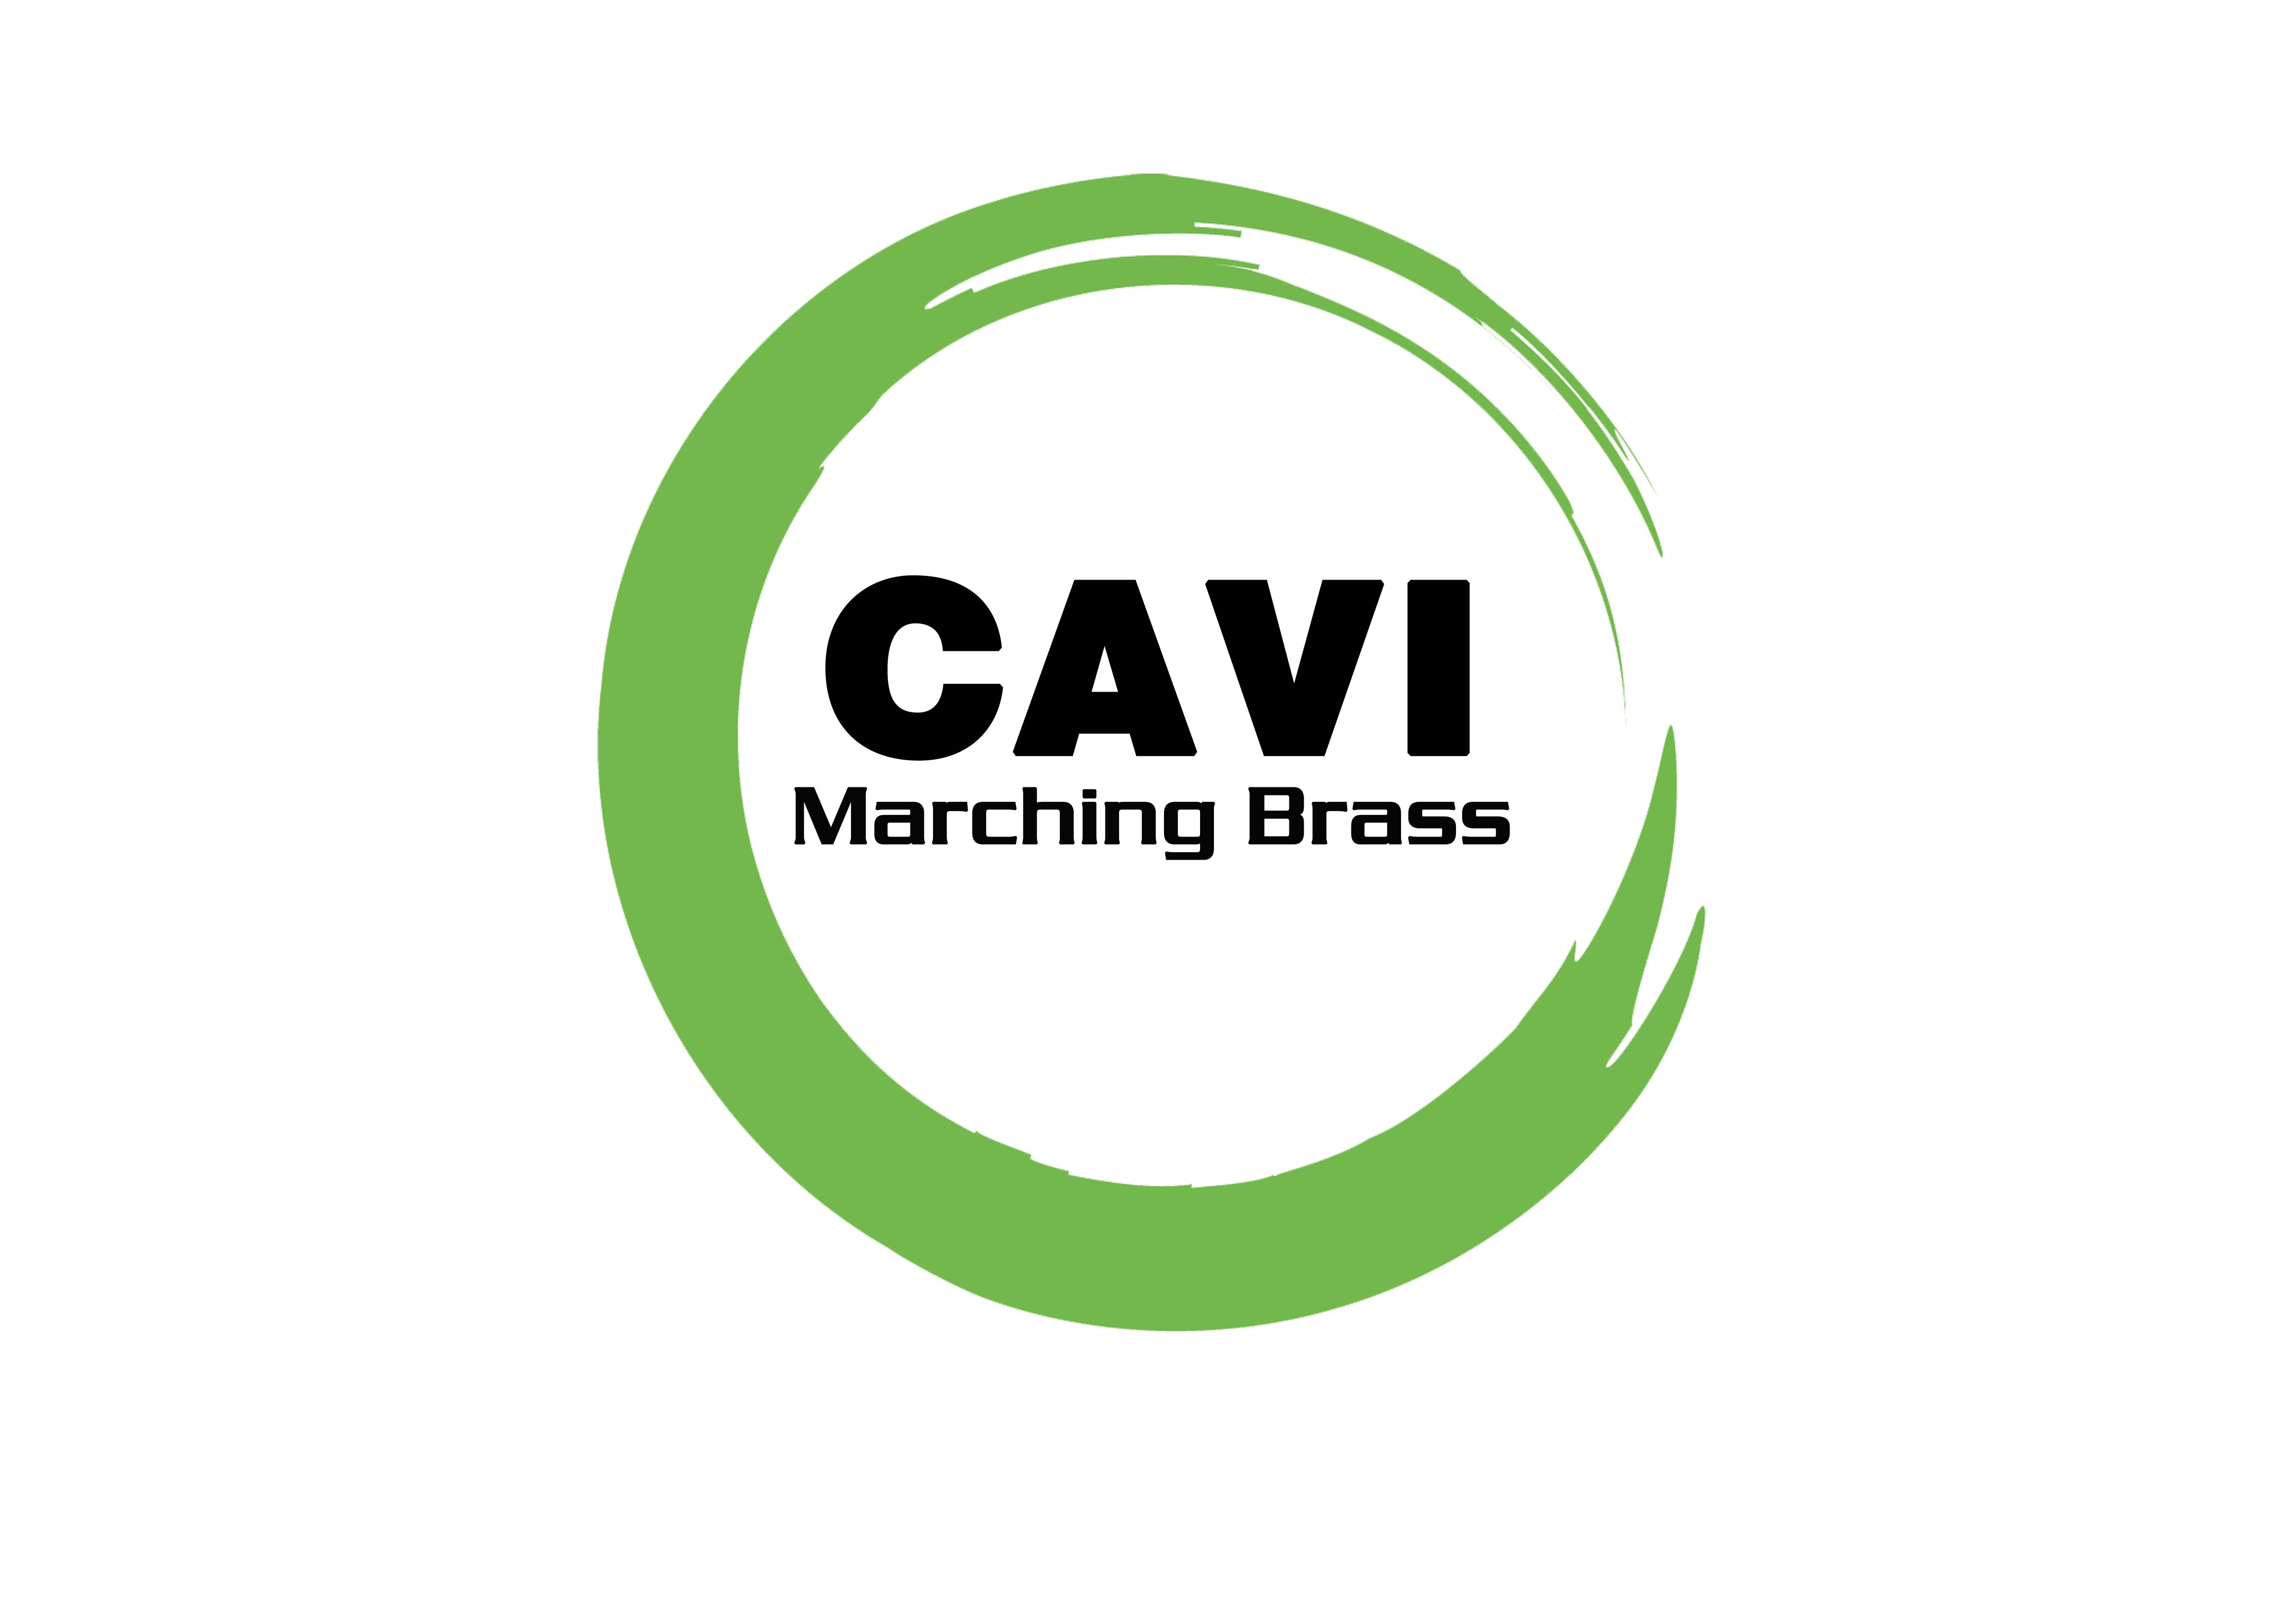 Logo Cavi Marching Brass